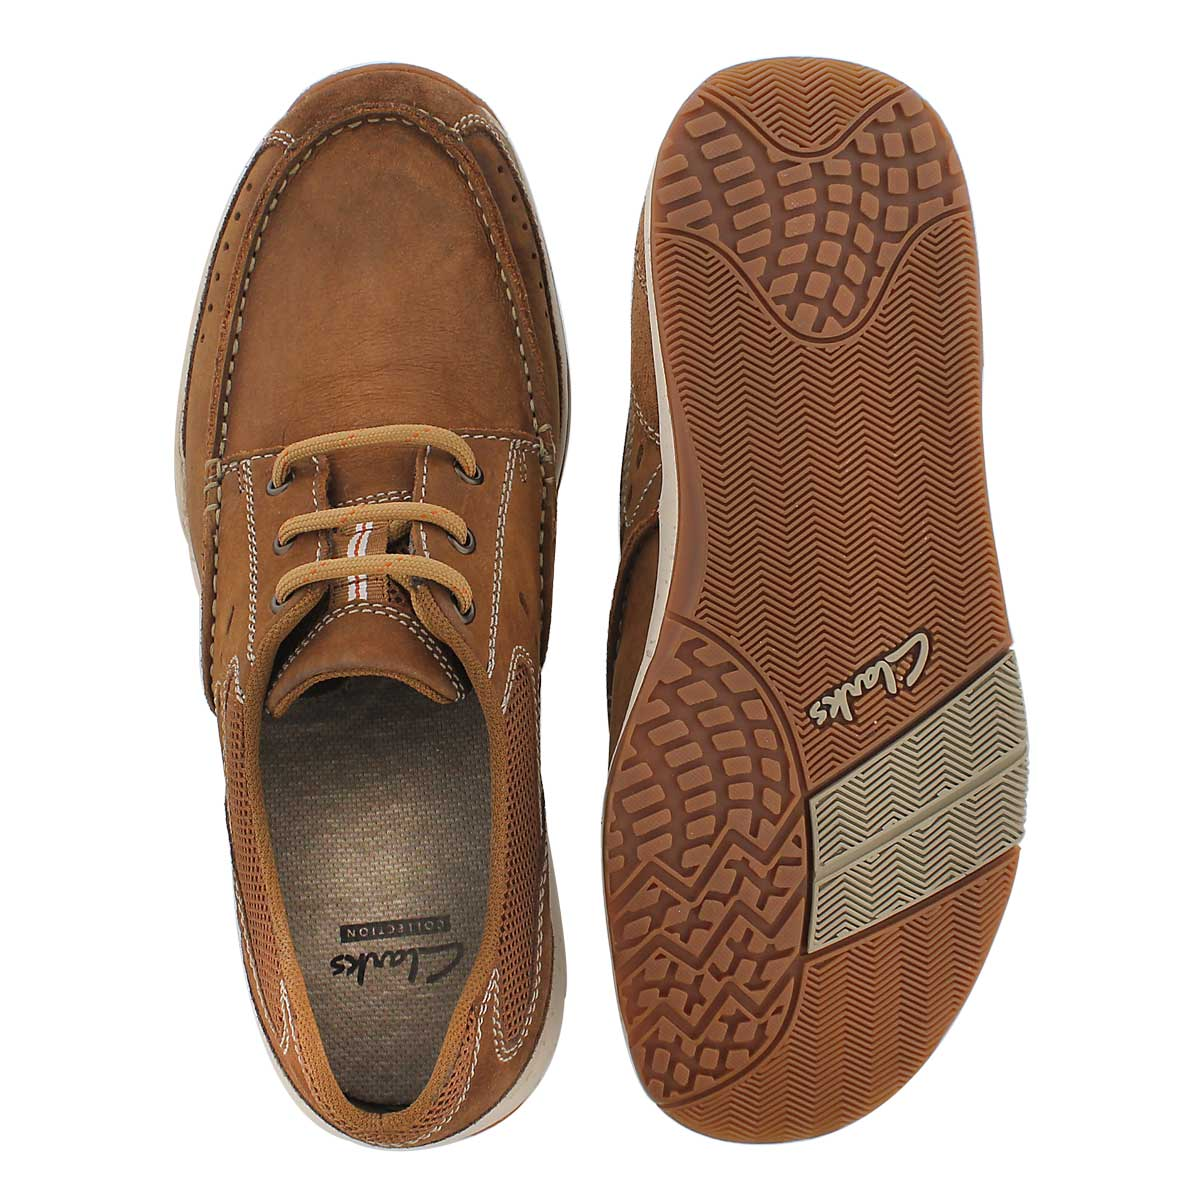 Mns Edge tan lace up casual shoe